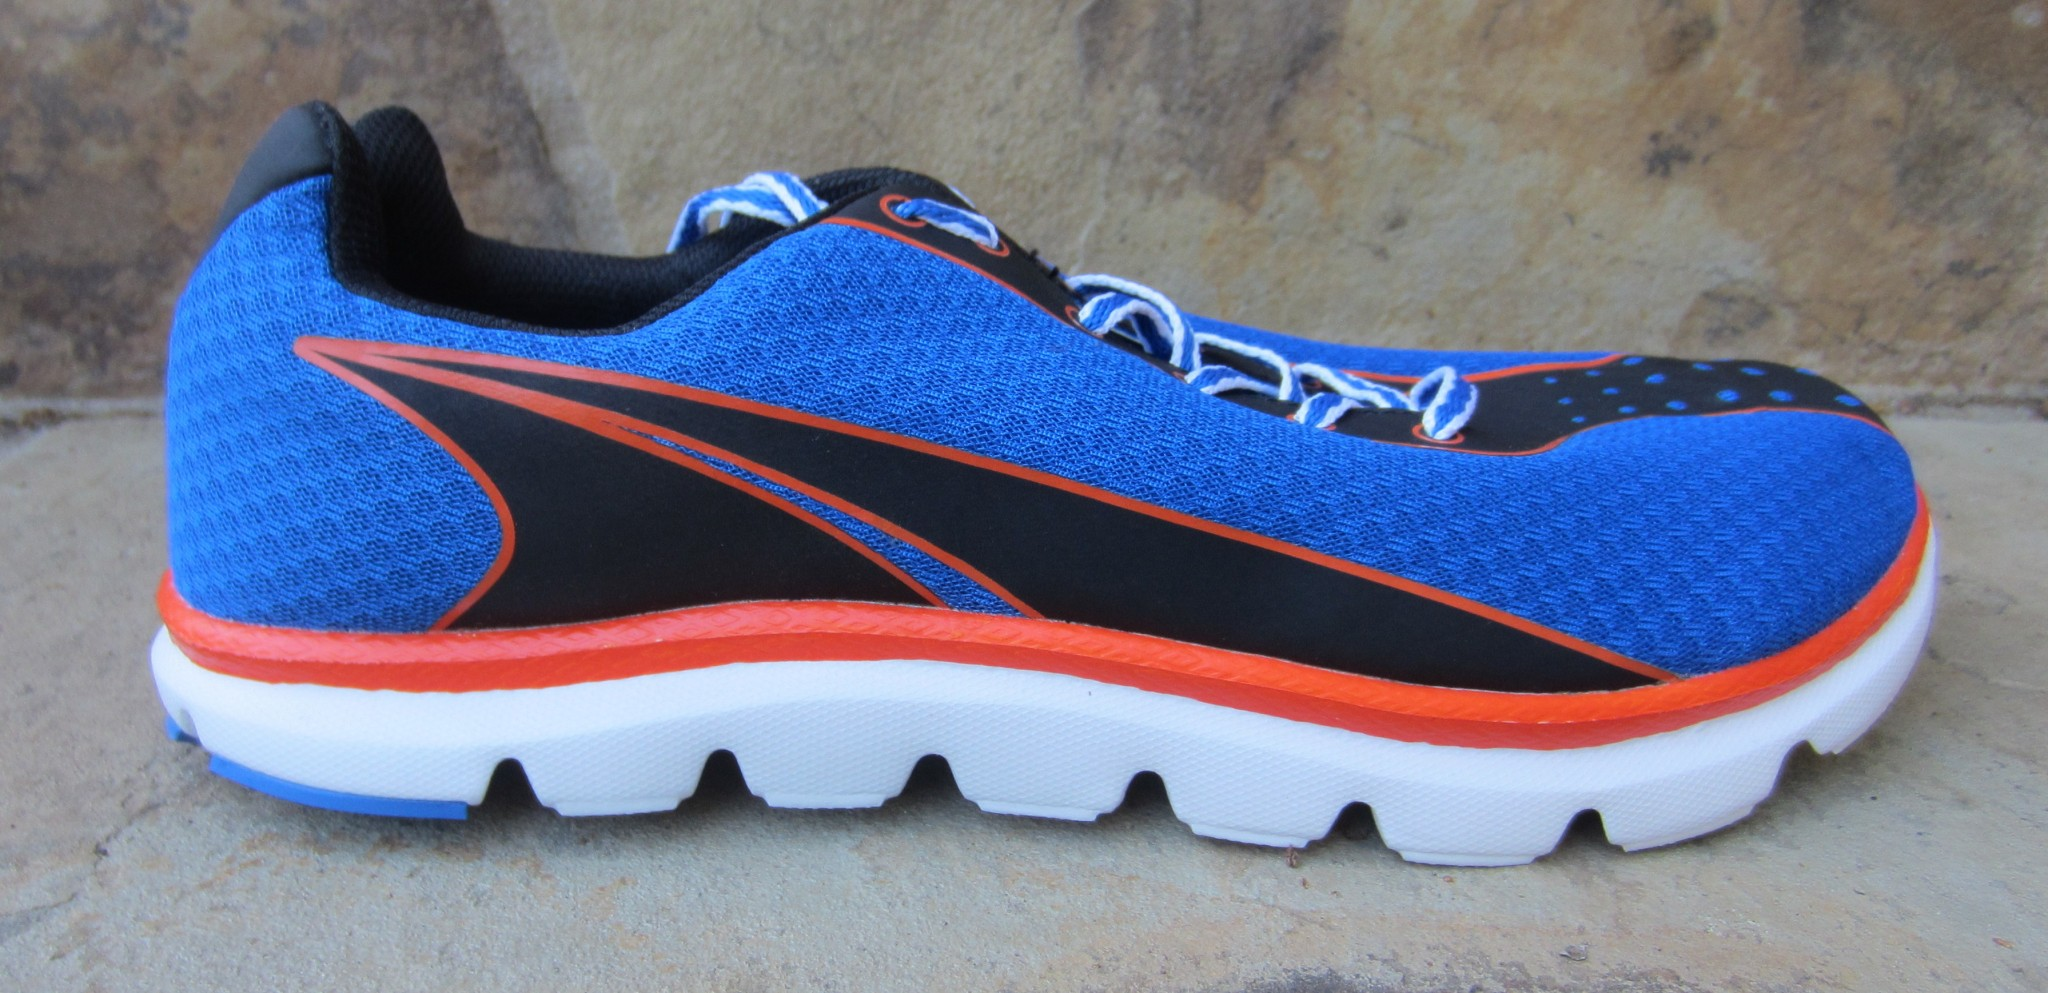 Altra One Squared Running Shoe Review